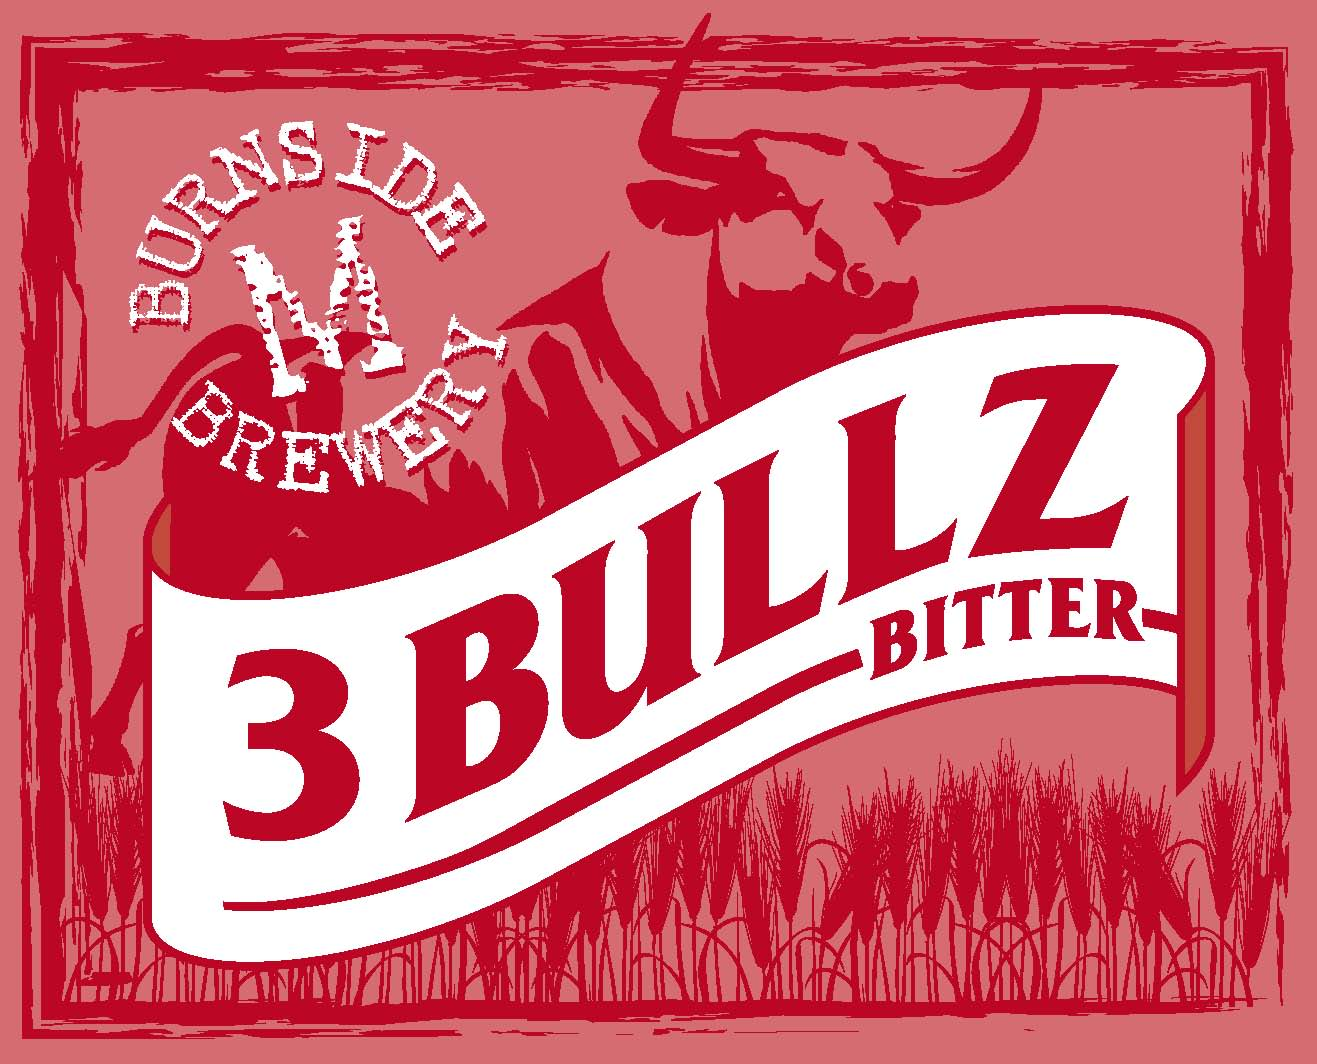 2. 3 BULLZ curiously familiar bitter ale